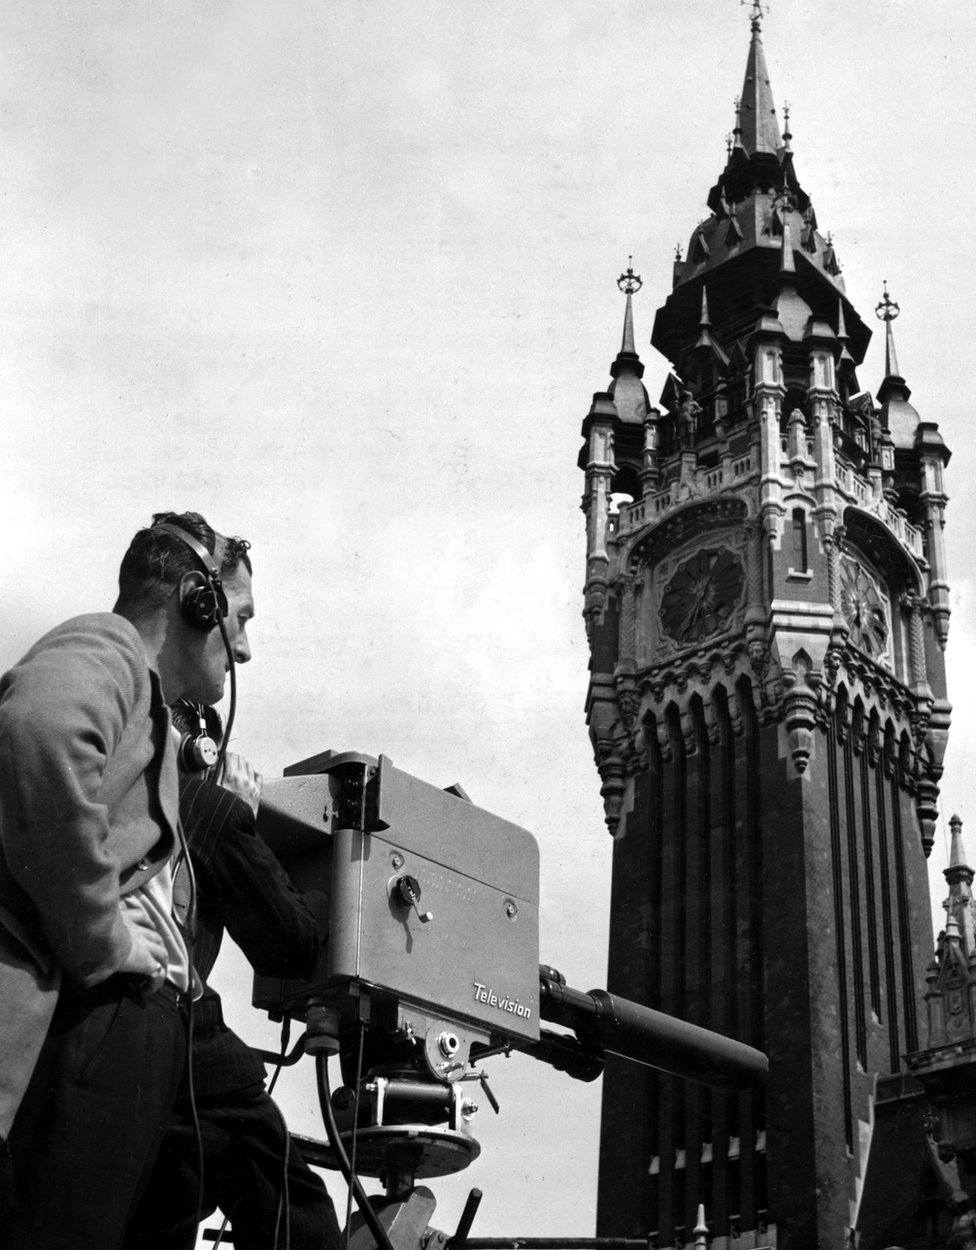 Television Camera facing the Clock Tower of the Hotel de Ville, Calais. Richard Dimbleby and Alan Adair gave commentaries on the festivities and interviewed local personalities in the front of the cameras, August 1950.